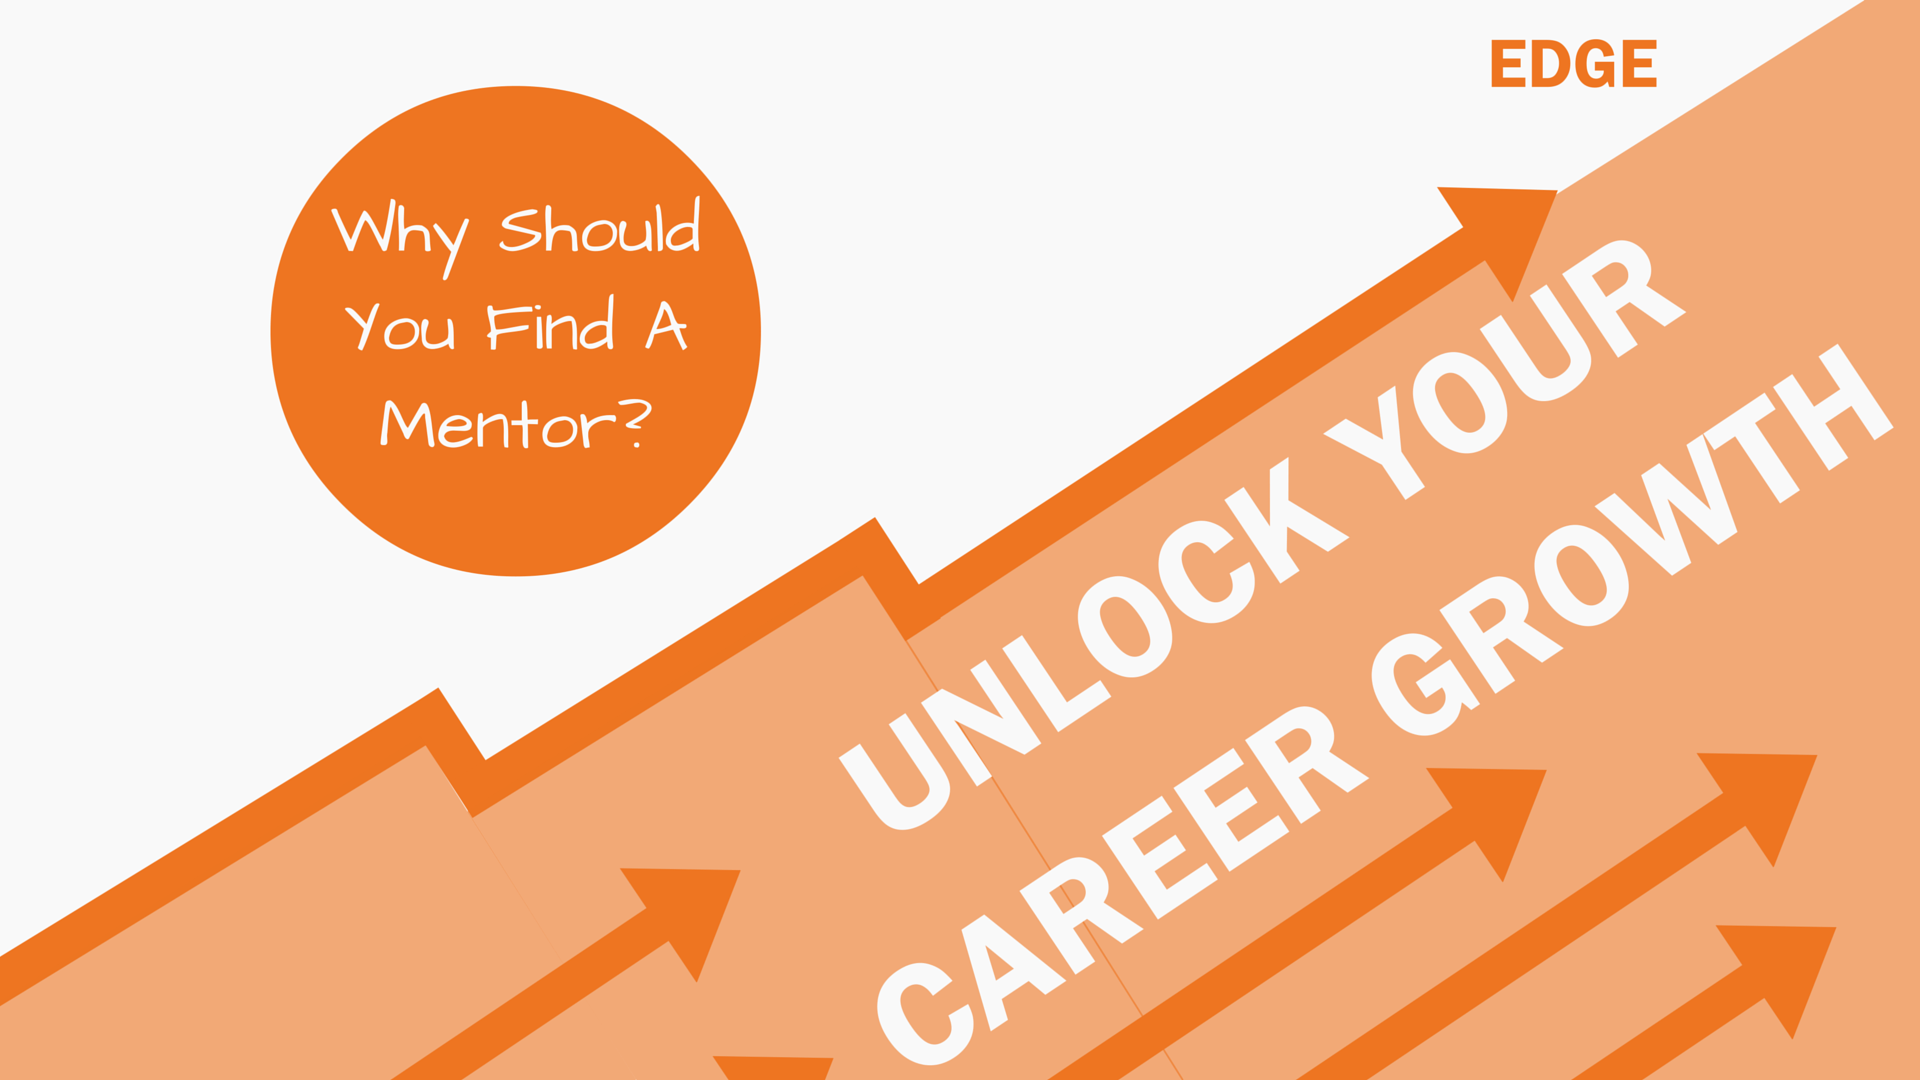 Why You Should Find A Mentor: Unlock Your Career Growth - EDGE Mentoring